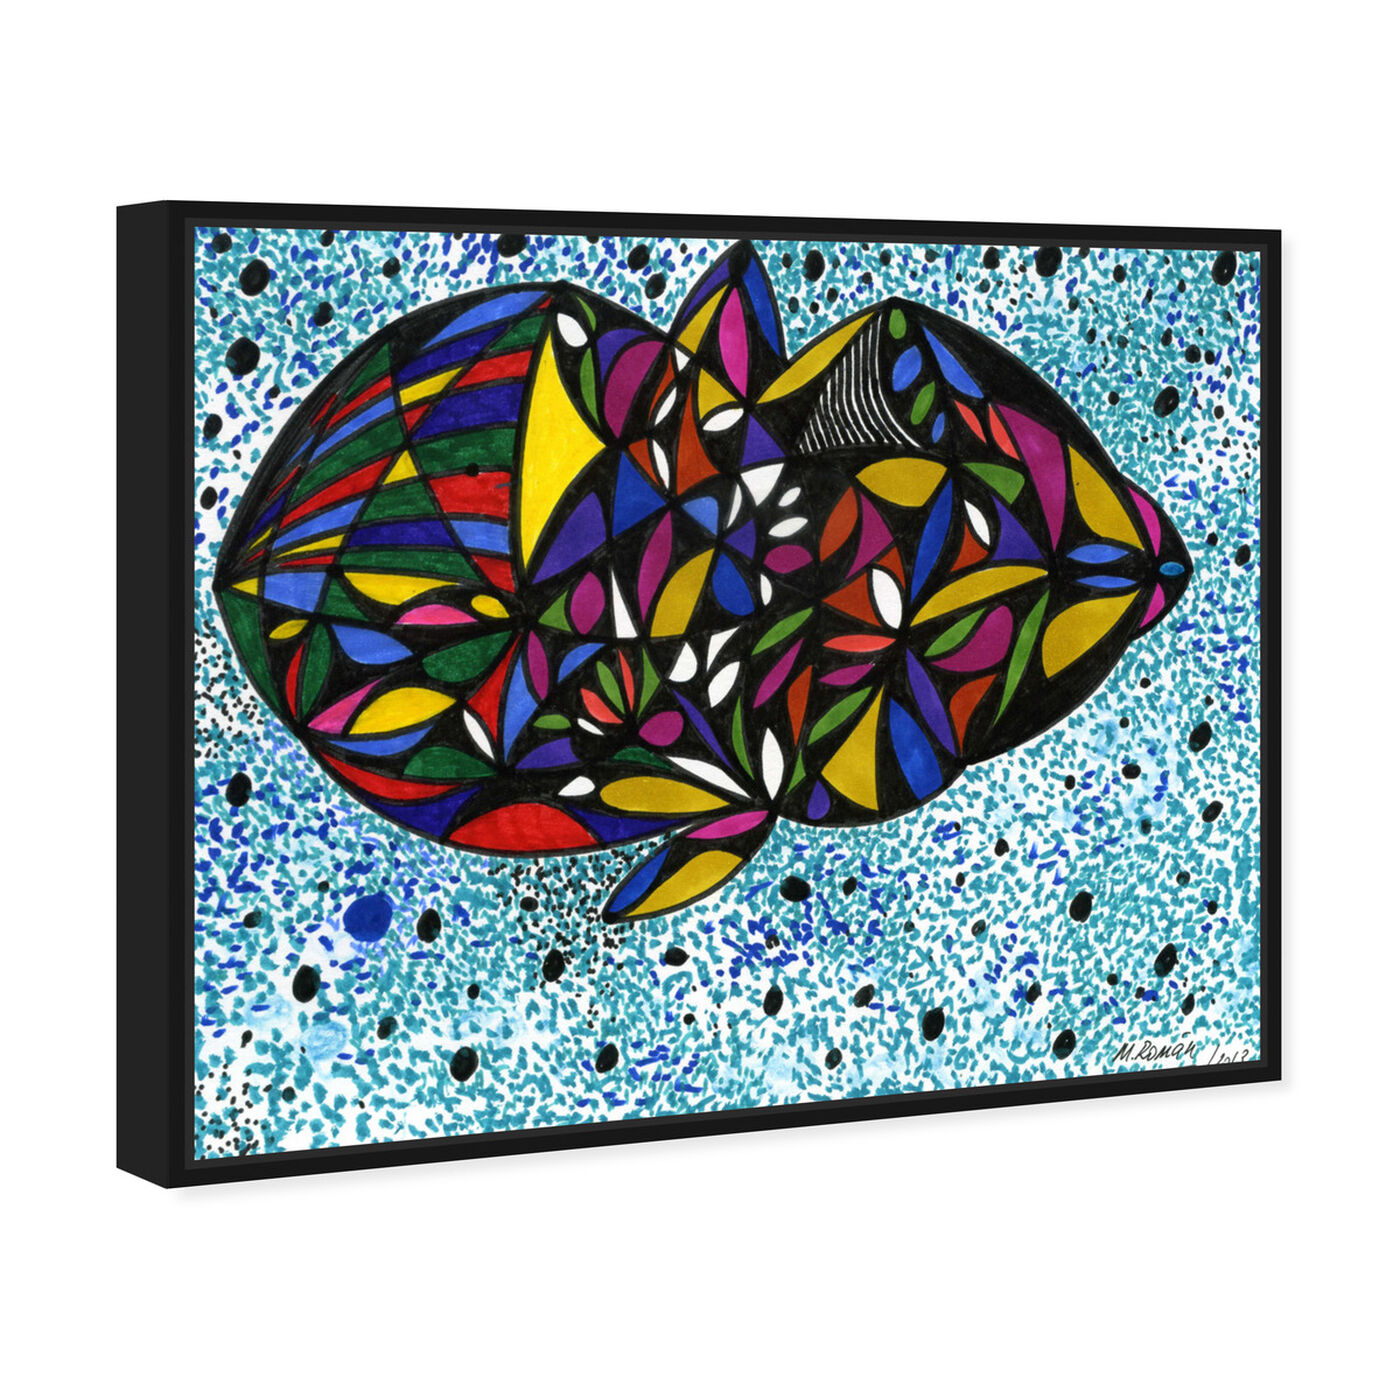 Angled view of Cuttlefish featuring abstract and geometric art.